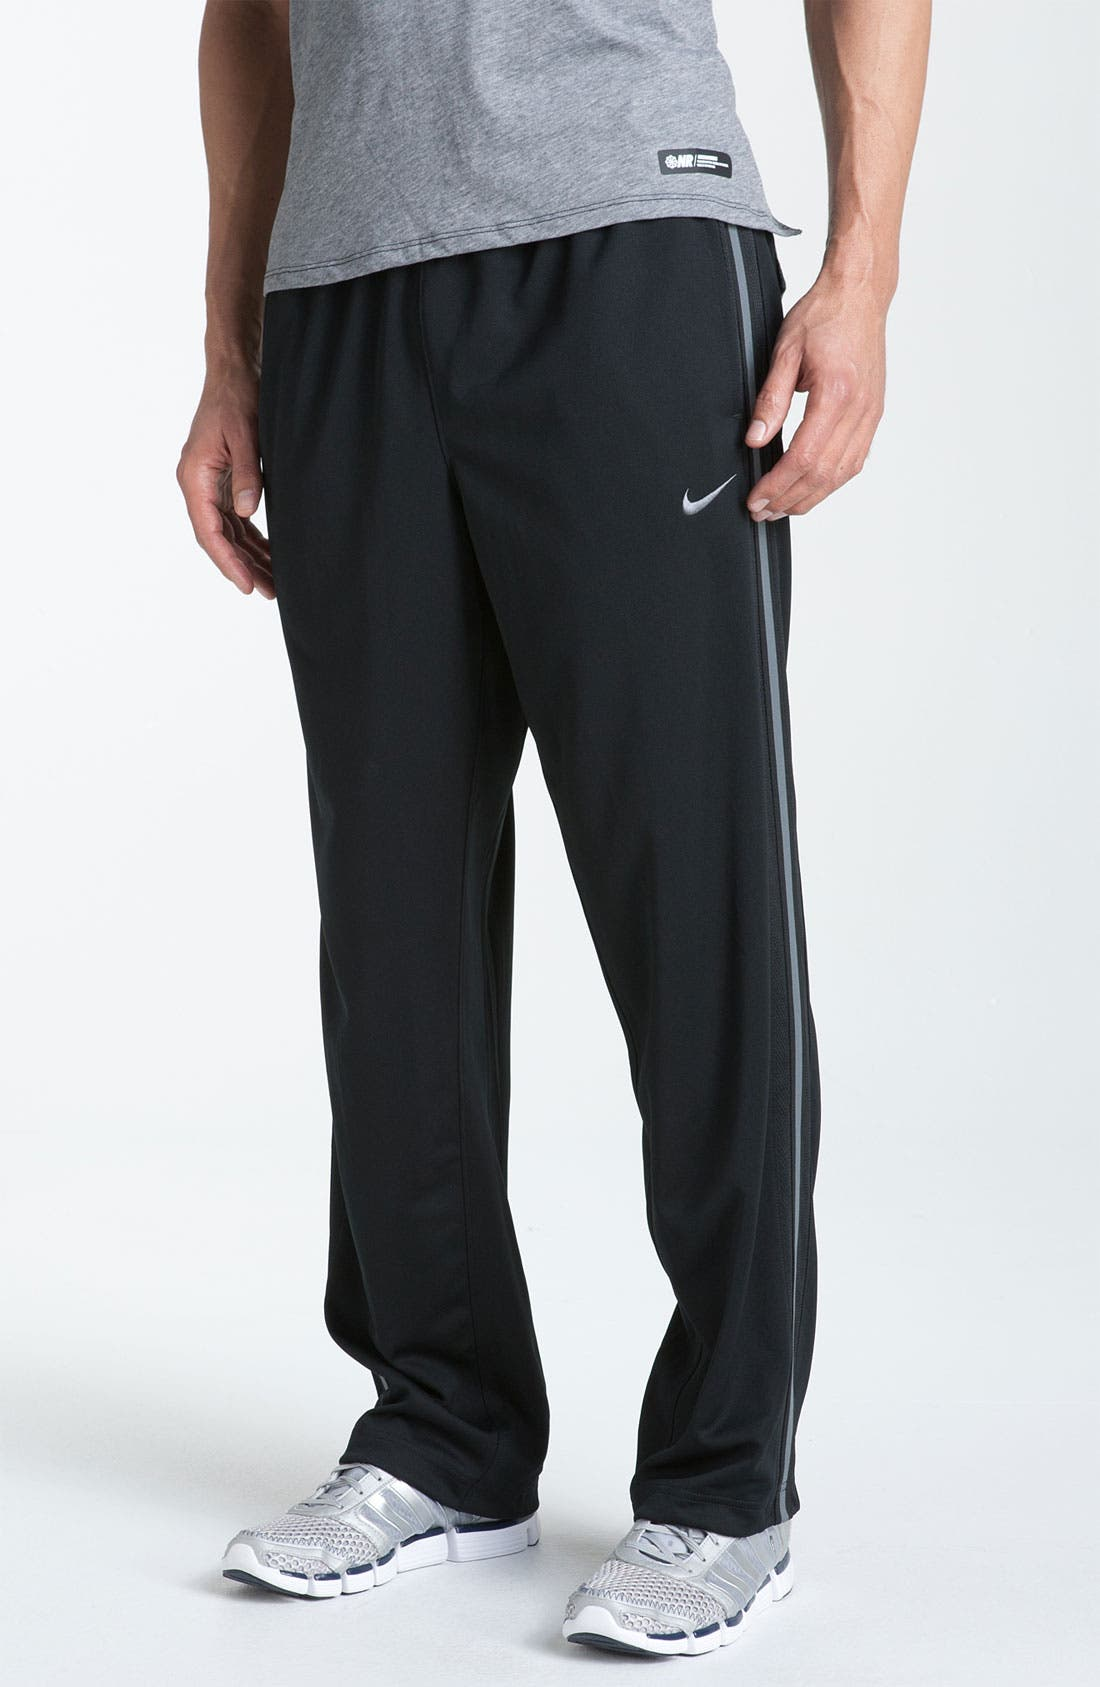 Main Image - Nike 'Epic' Dri-FIT Training Pants